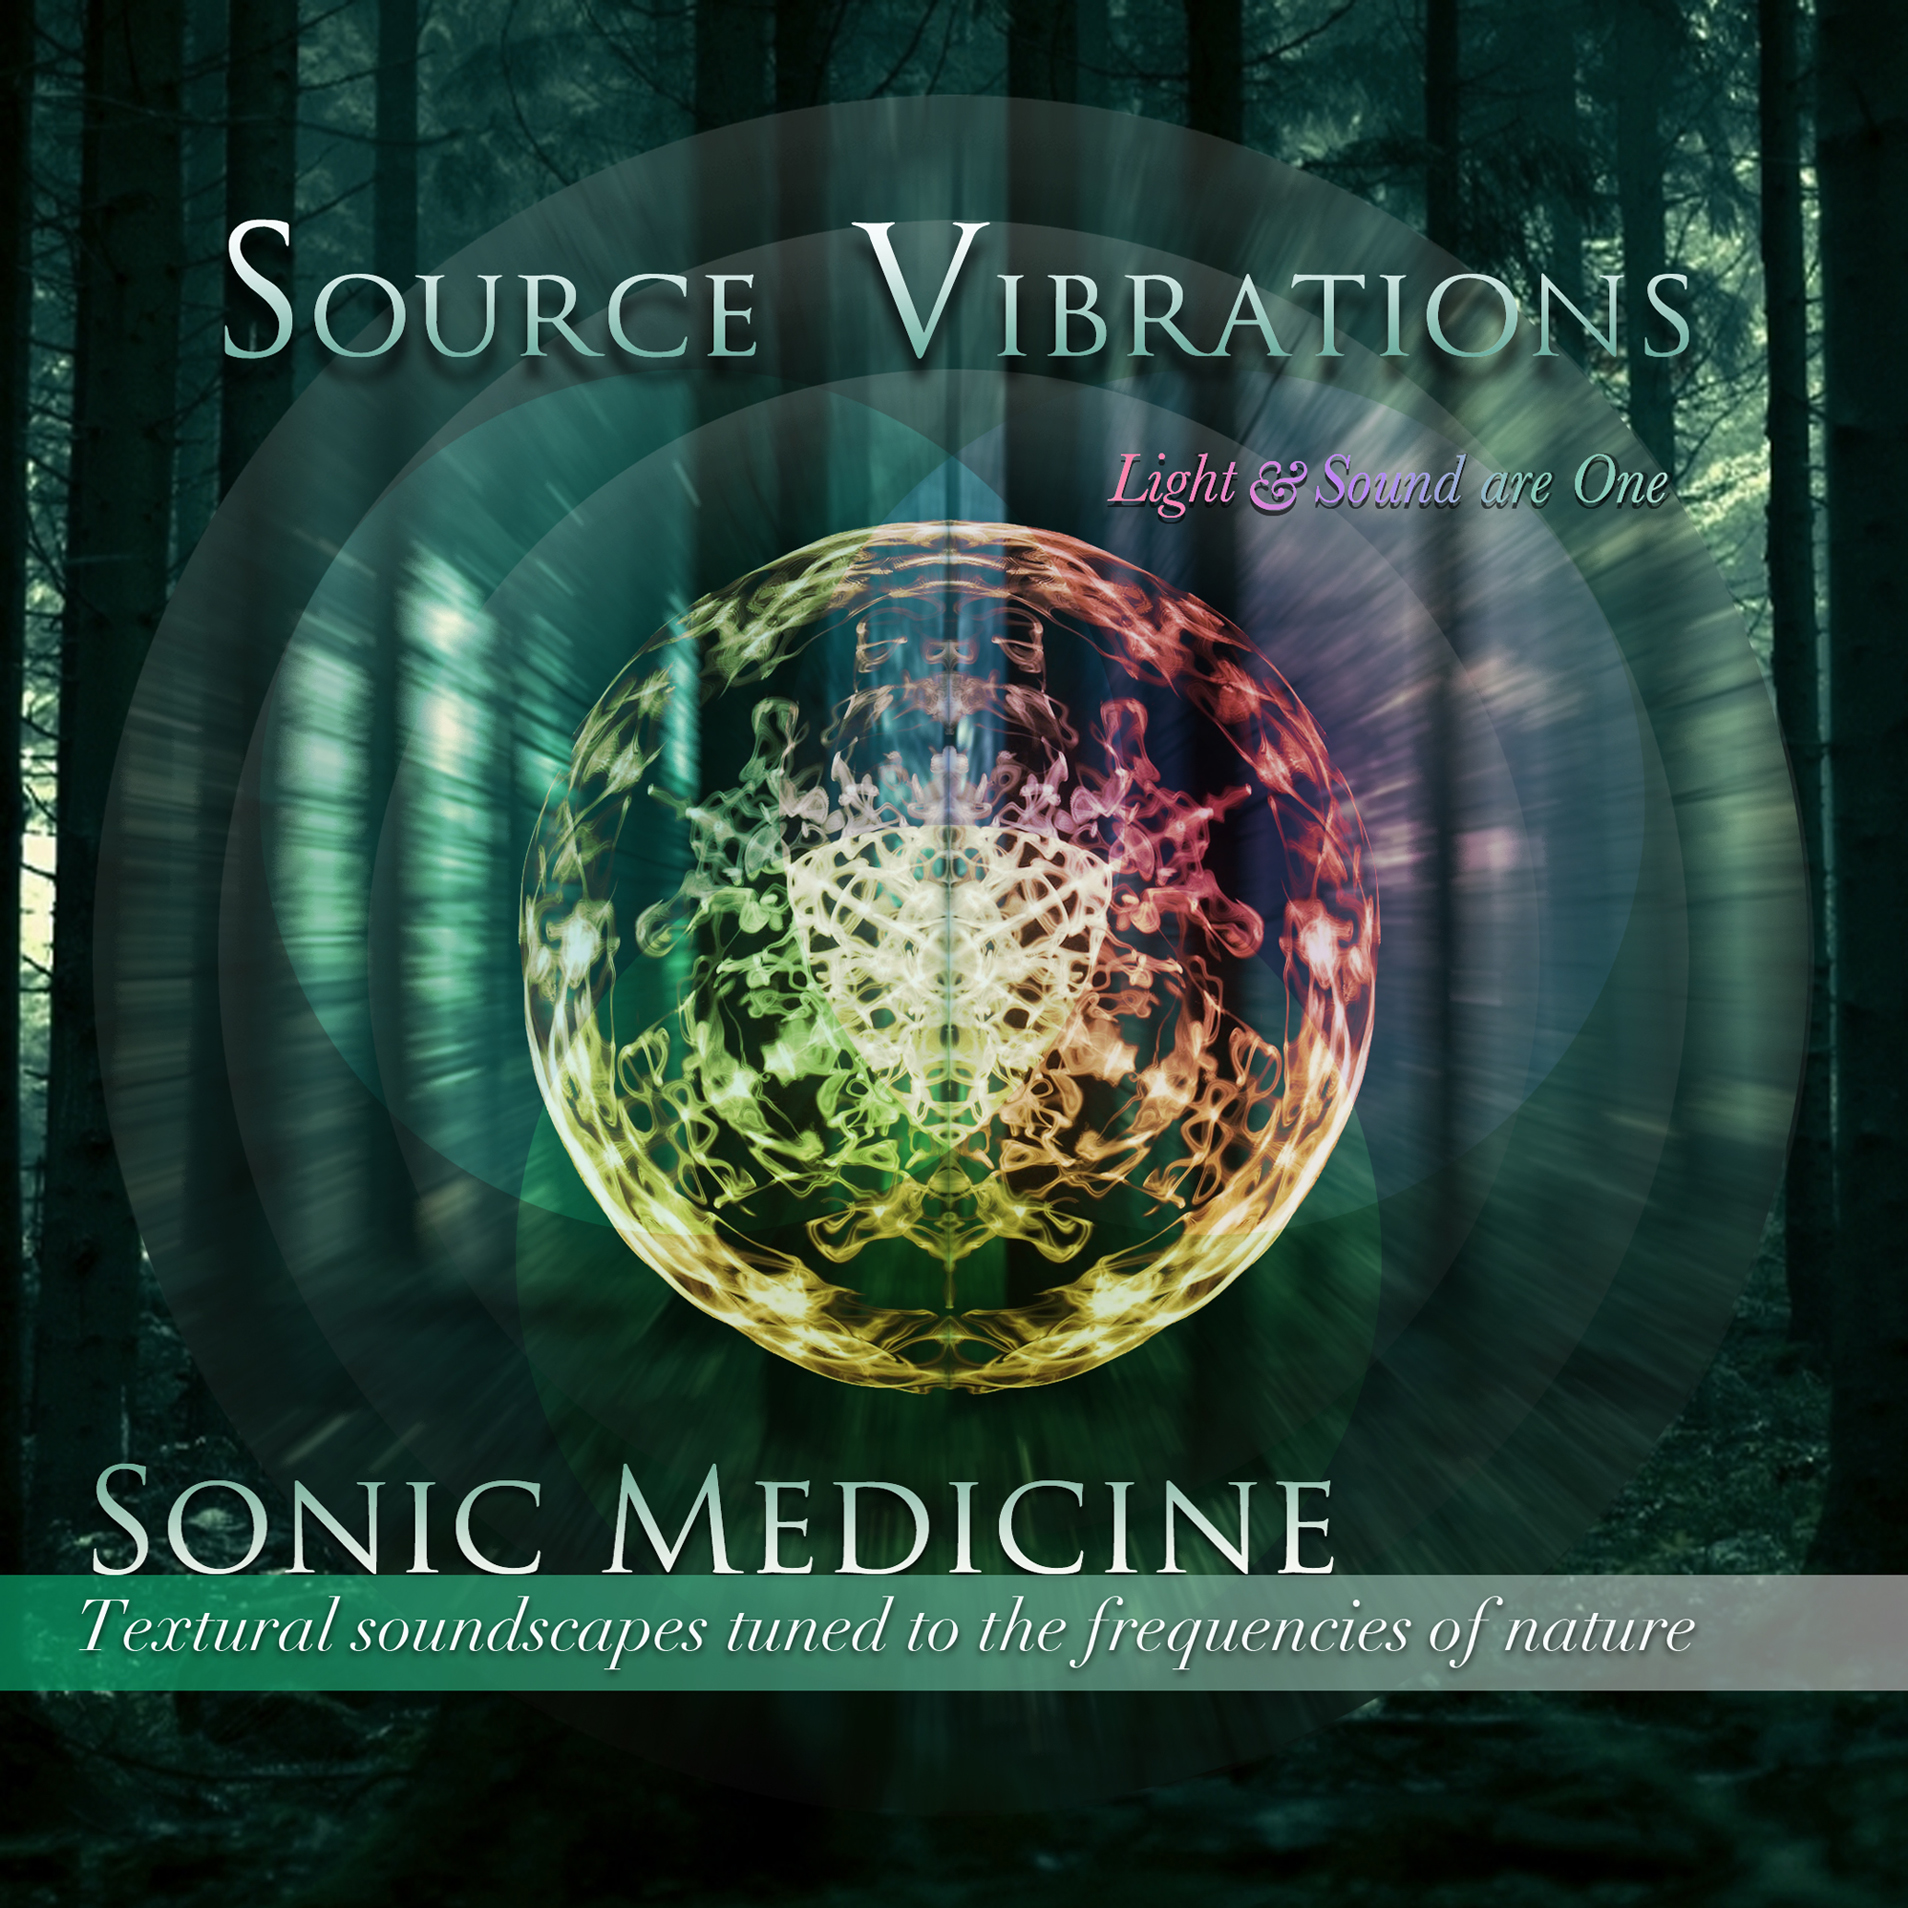 Source Vibrations